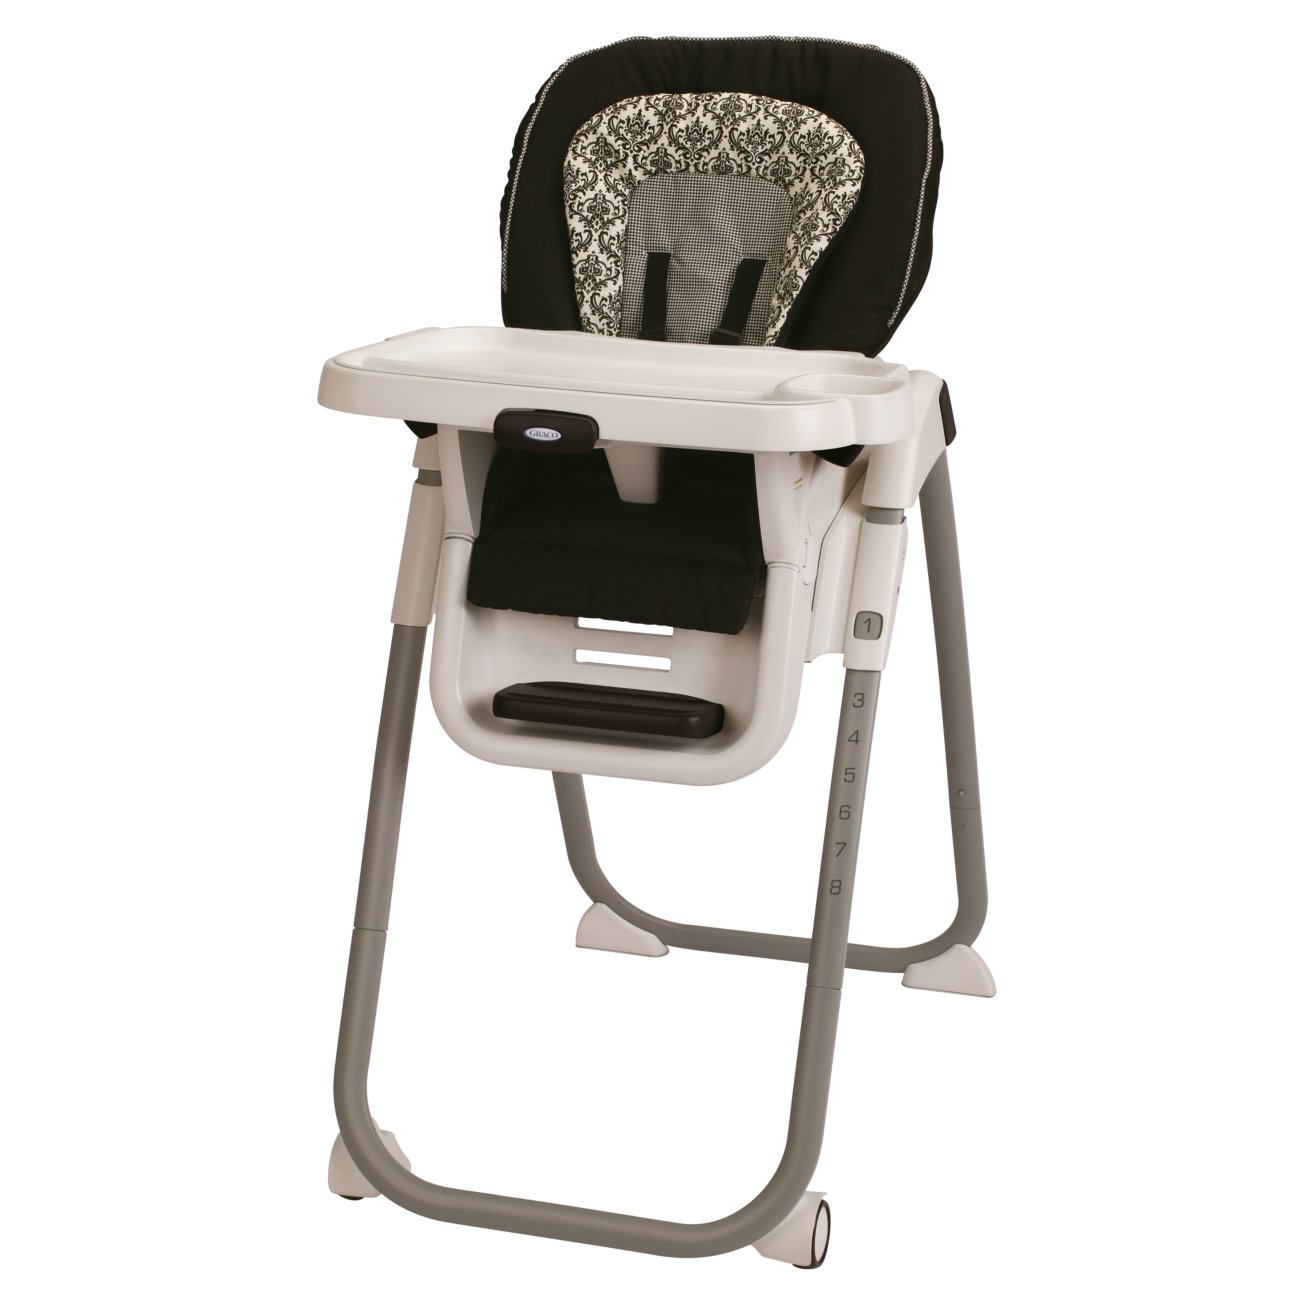 Graco 4 In One High Chair Graco Duodiner Lx High Chair Baby Gear And Accessories